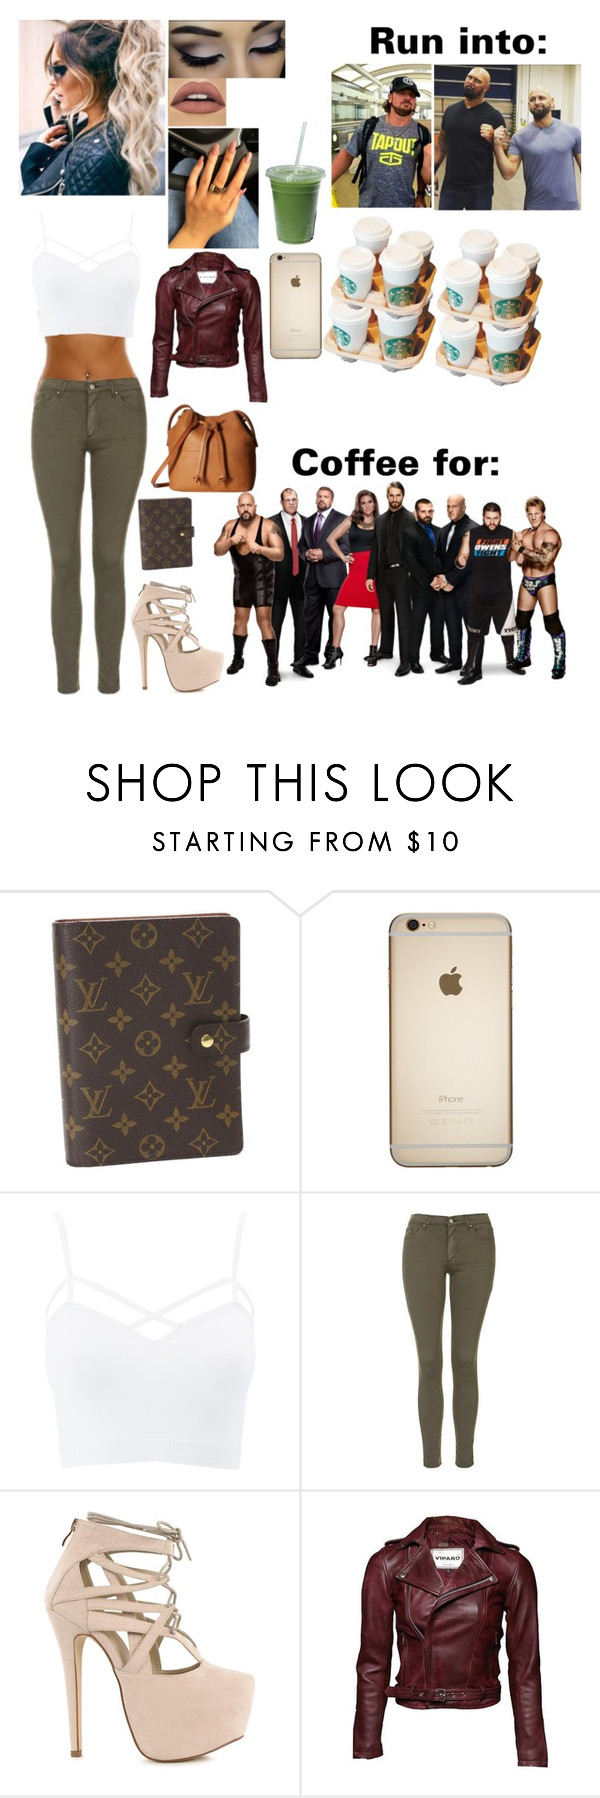 """Coffee run for the Authority and a interesting encounter with the Club for Kaitlyn"" by kaitlyngilmore ❤ liked on Polyvore featuring Louis Vuitton, Charlotte Russe, Topshop, Nly Shoes, ECCO, Kane and plus size clothing"